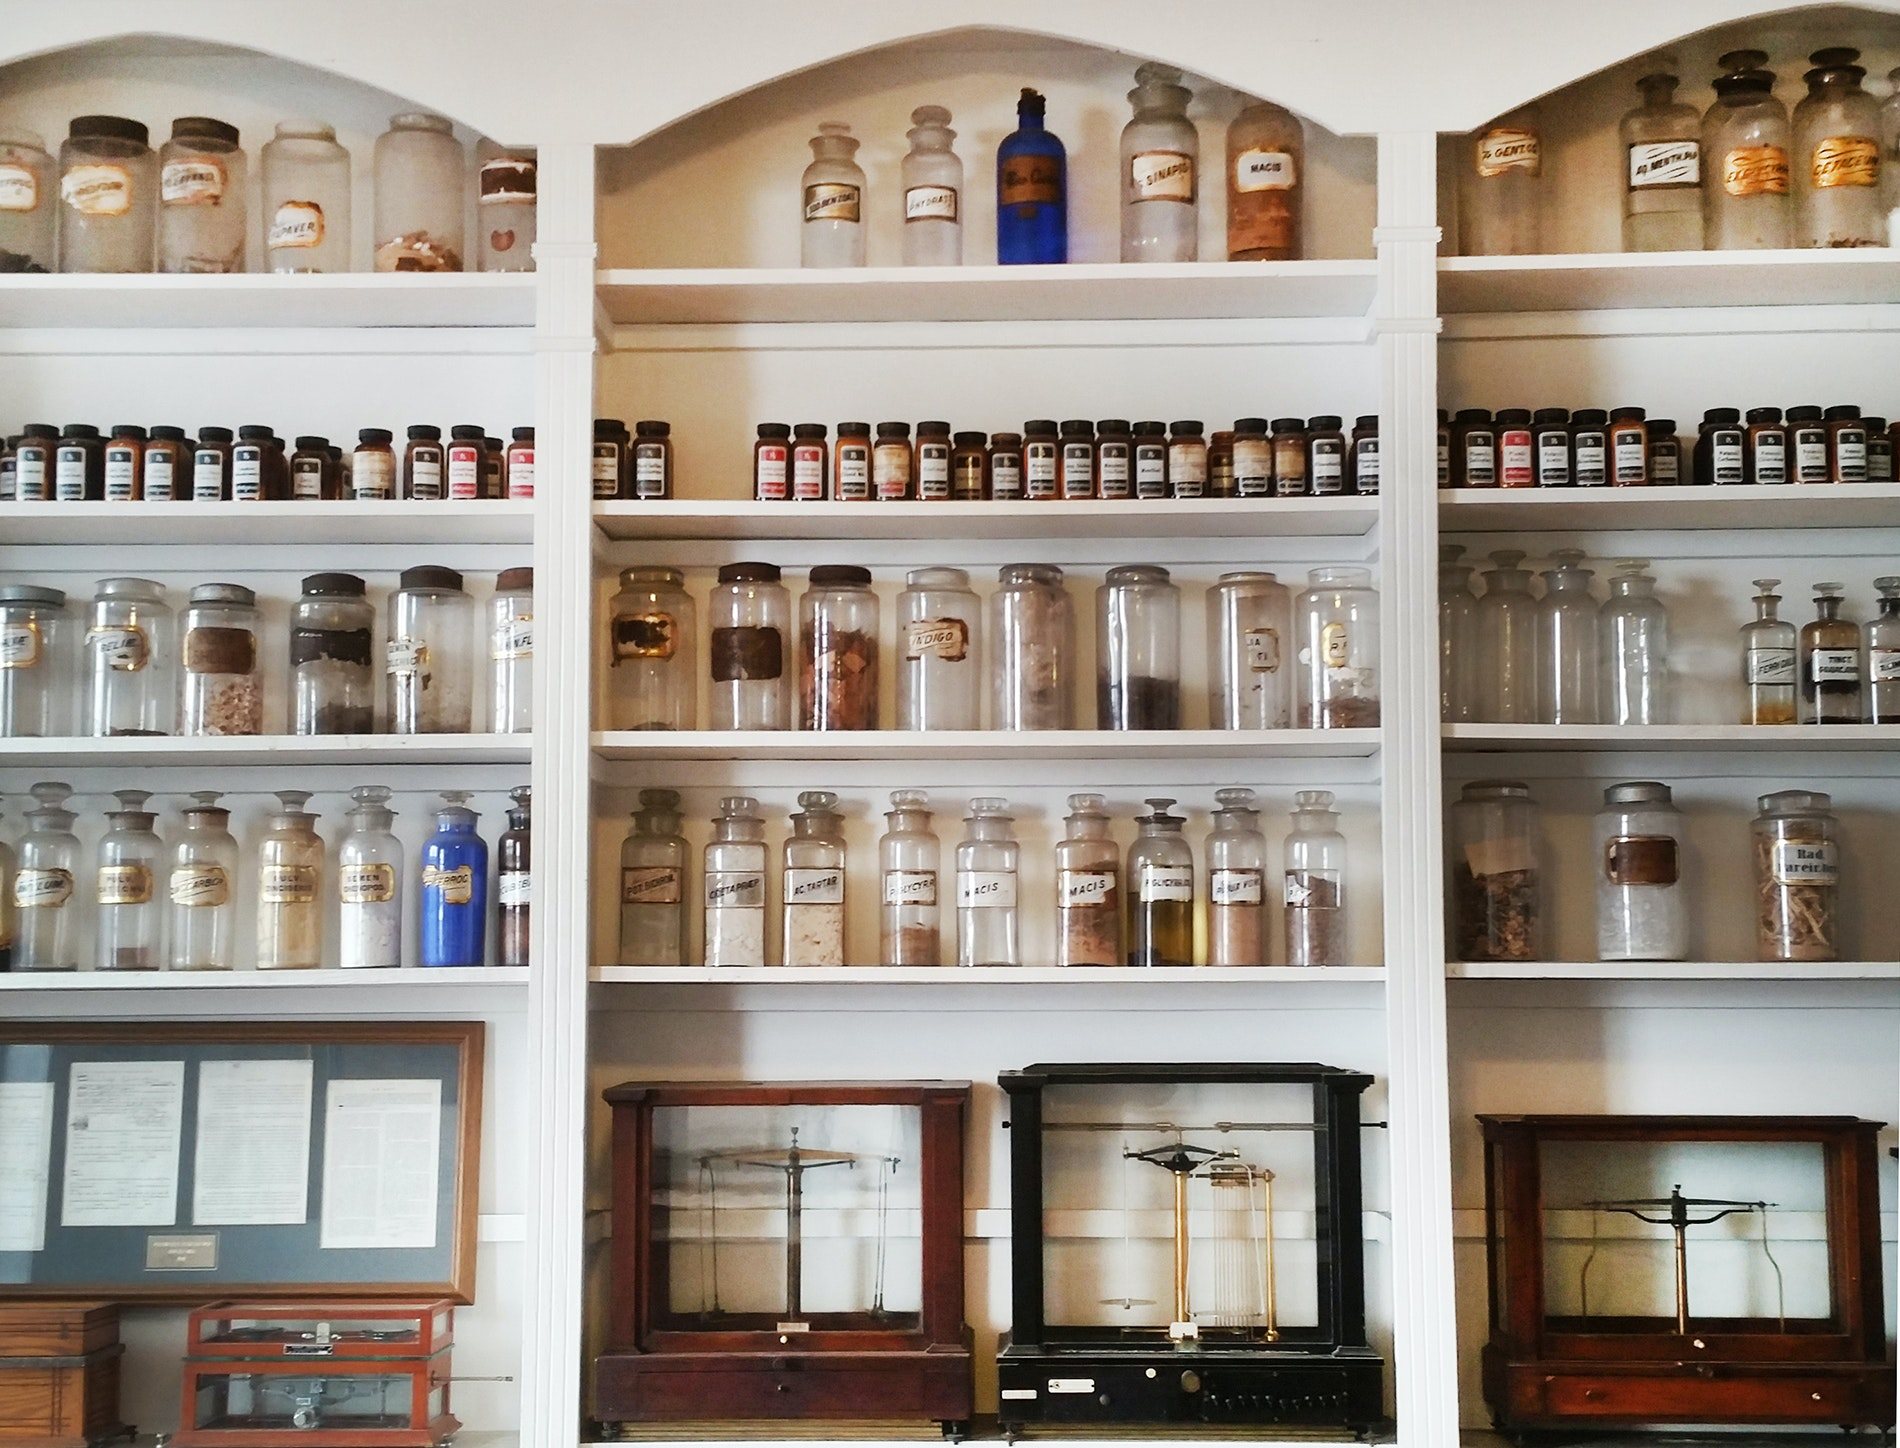 New Orleans was home to America's first licensed pharmacist in the 1800s.